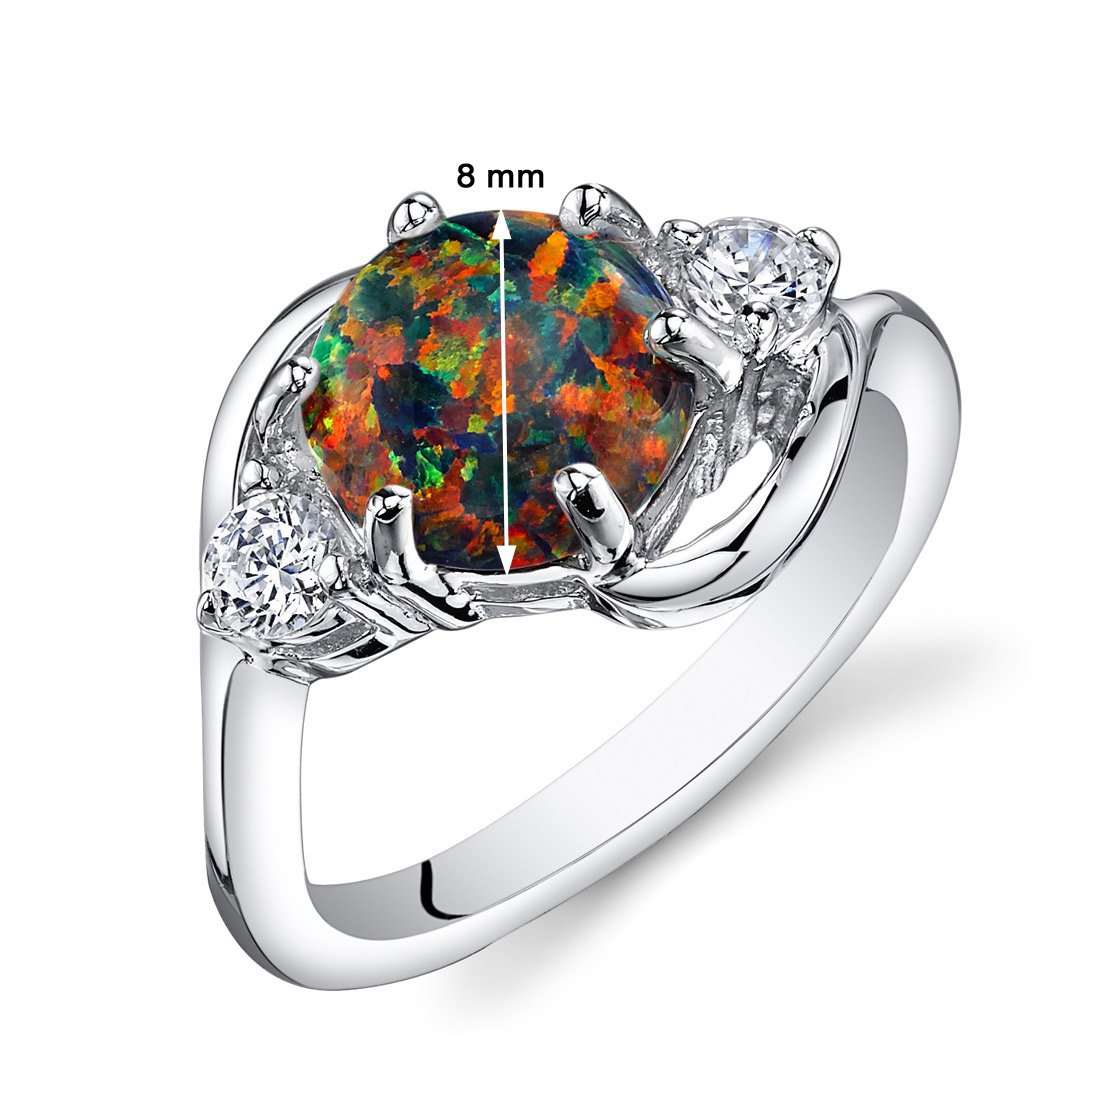 543c00609 Amazon.com: Peora Created Black Opal Ring Sterling Silver 3 Stone 1.75  Carats Sizes 5 to 9: Jewelry